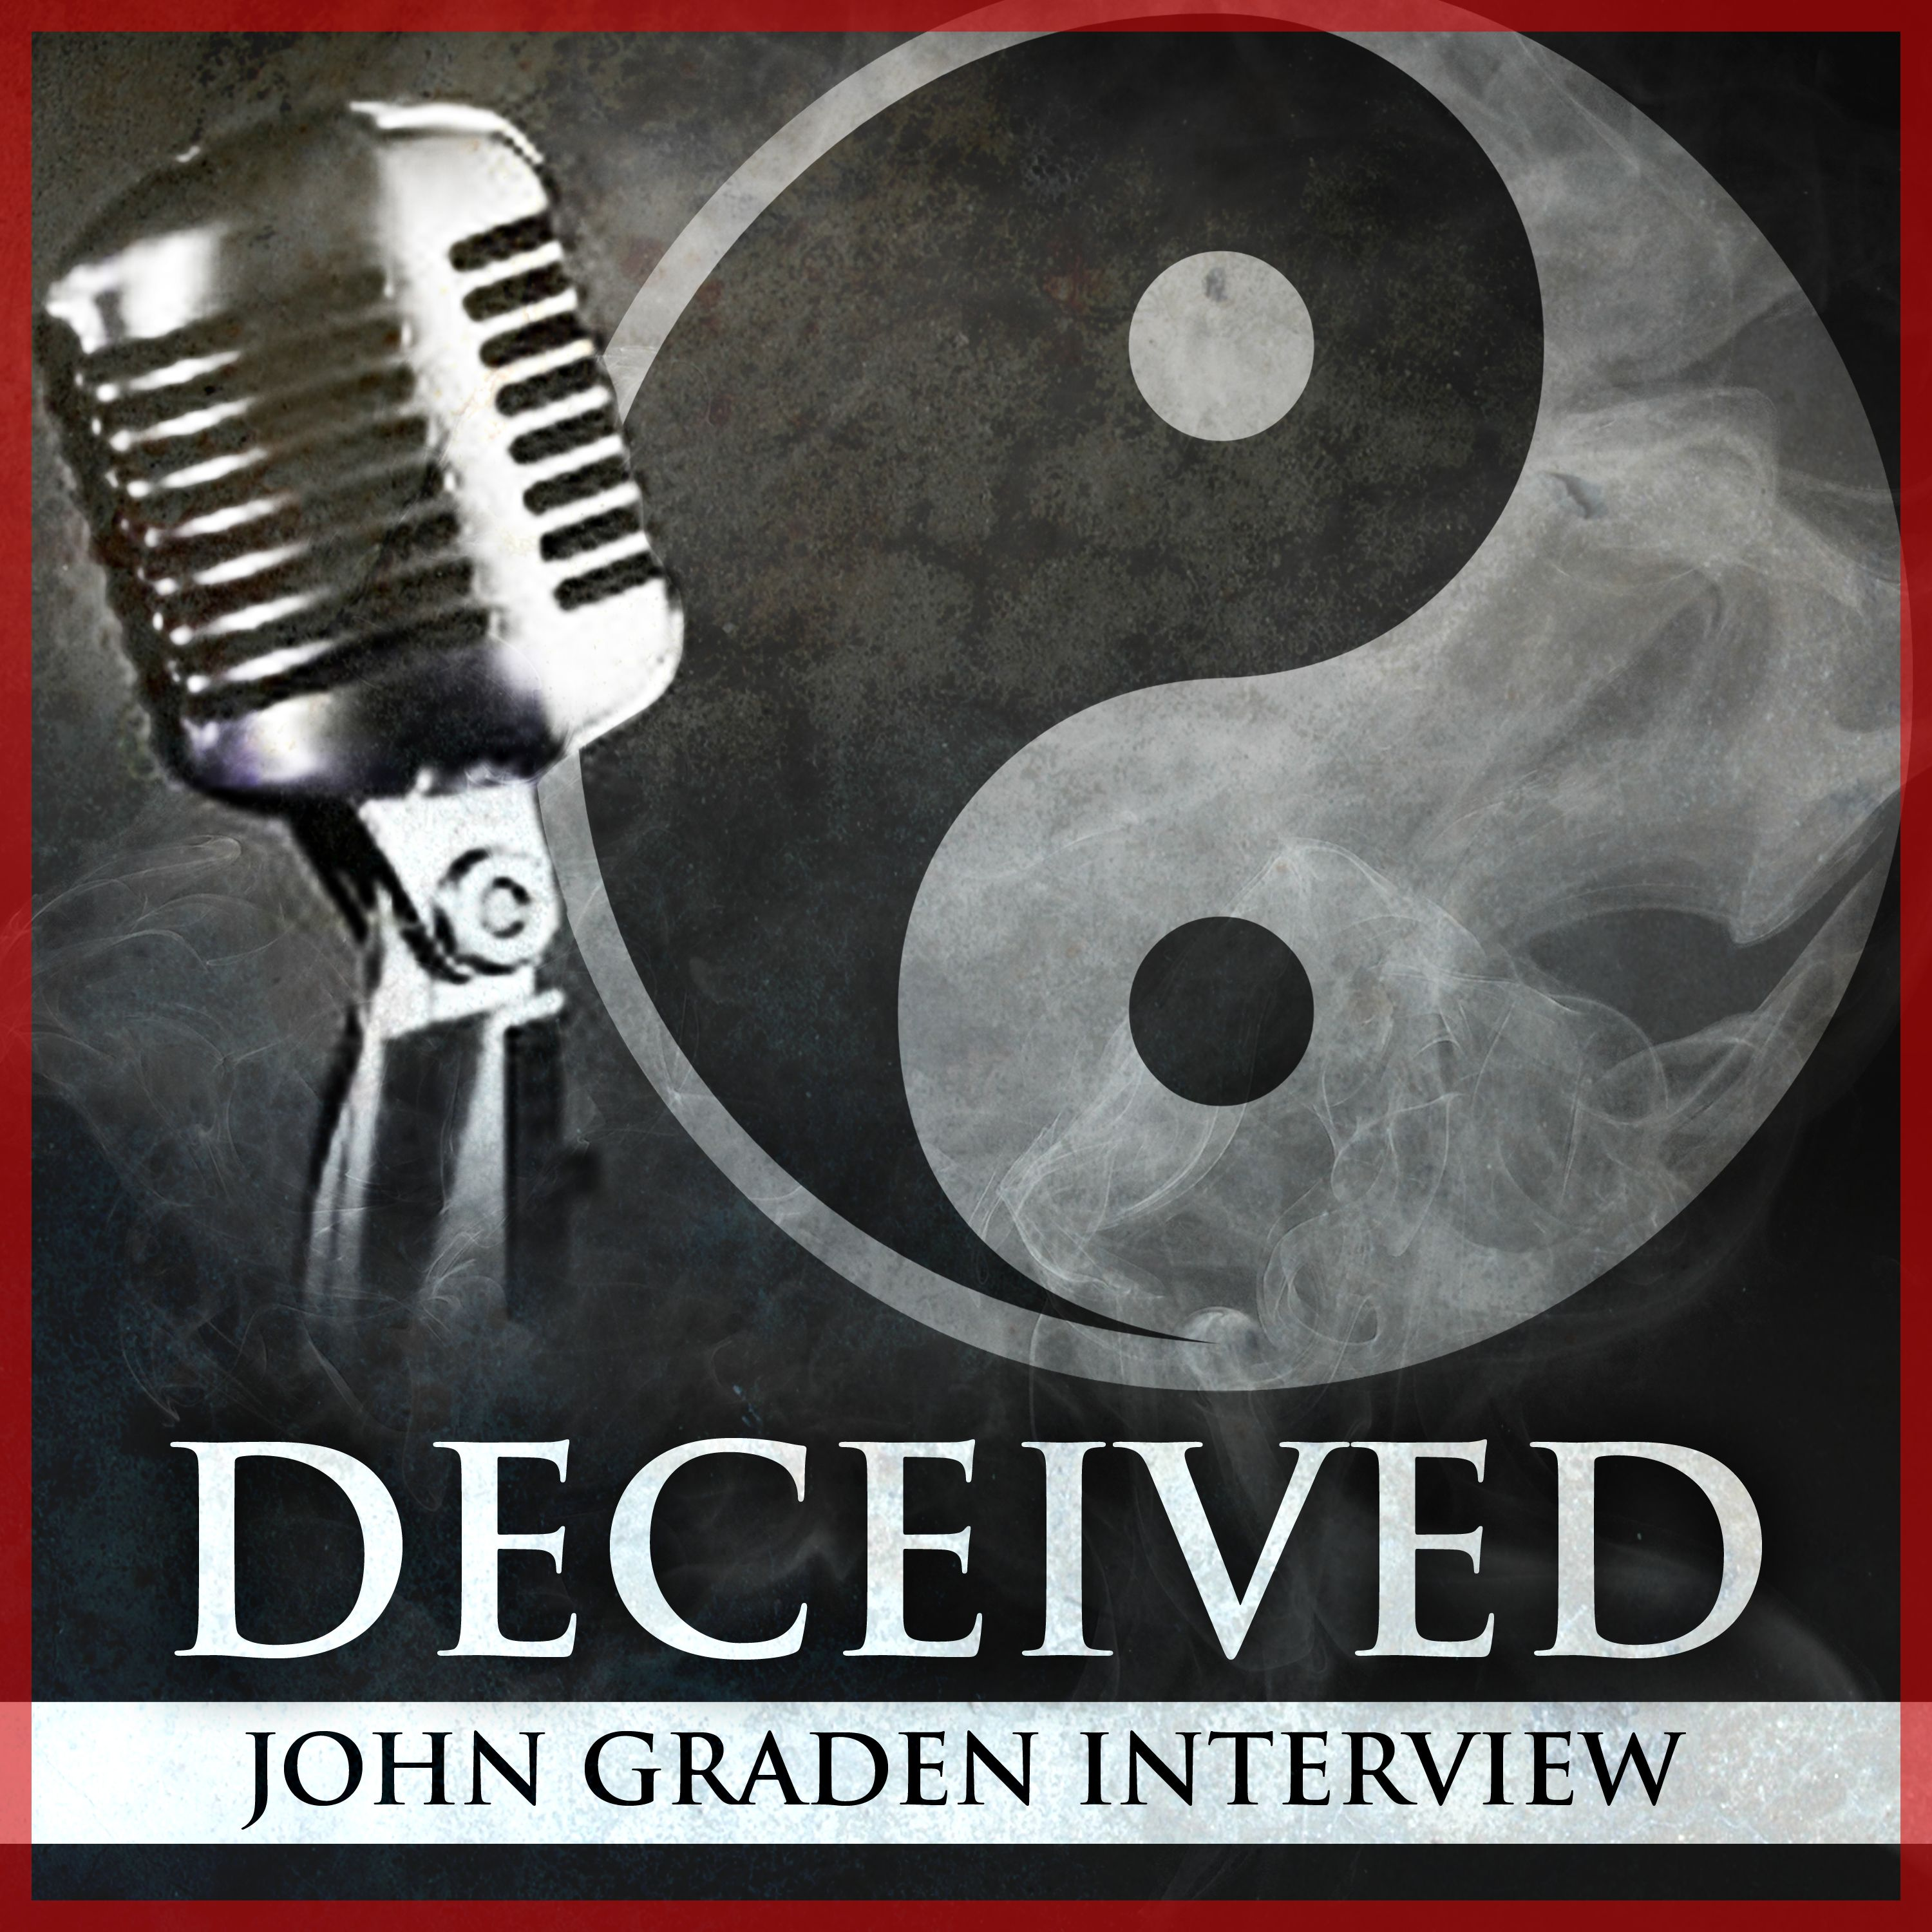 Deceived Podcast Interview with Martial Arts Pioneer John Graden